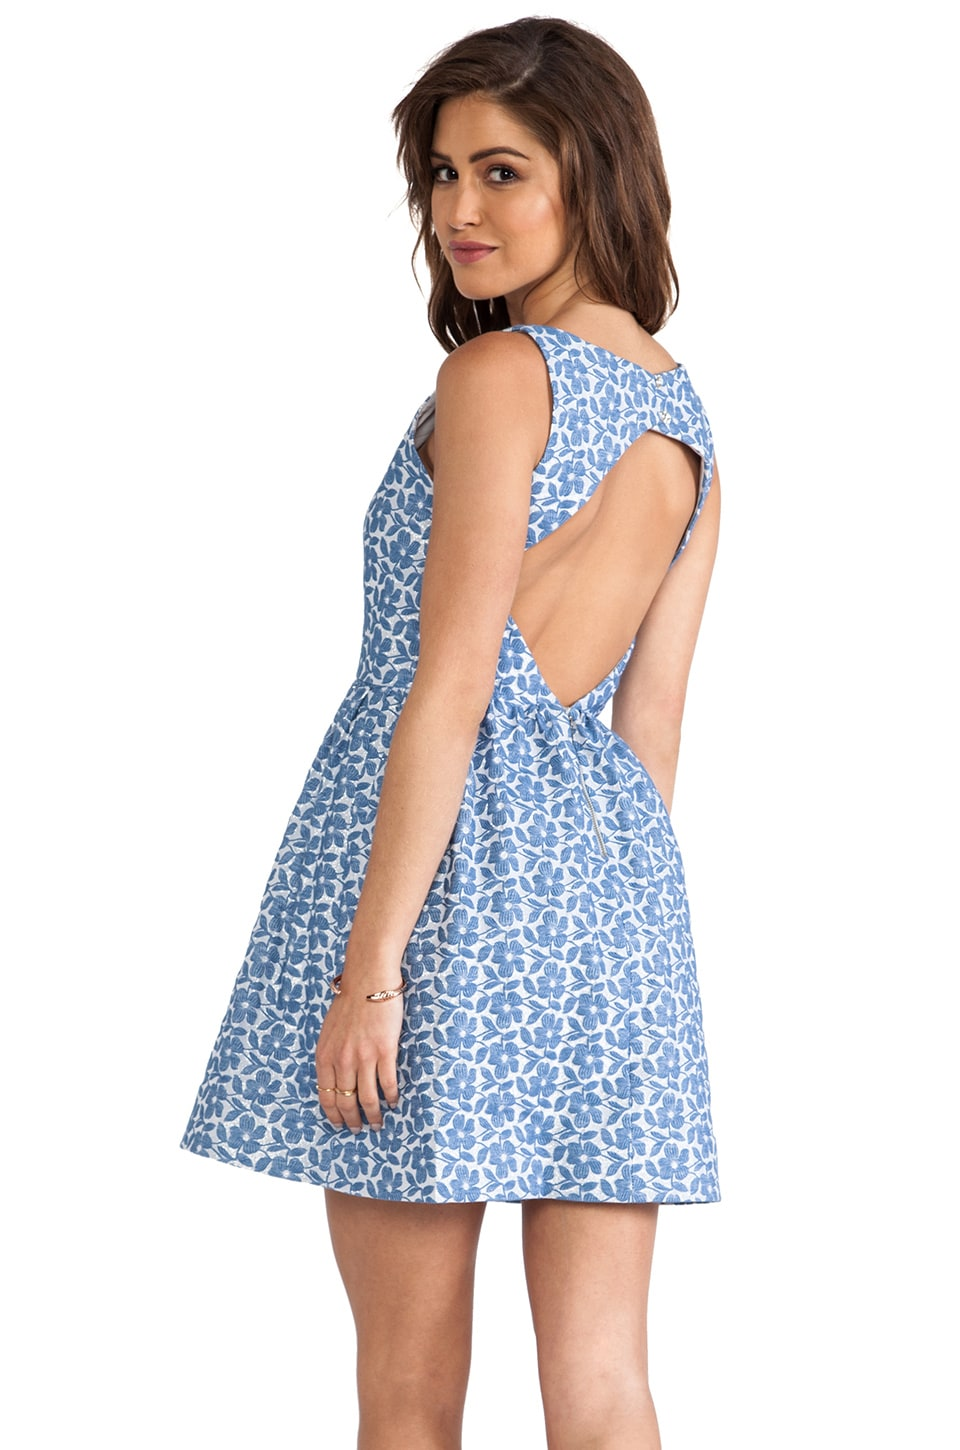 Alice + Olivia Lillyanne Puff Skirt Mini Dress in Blue